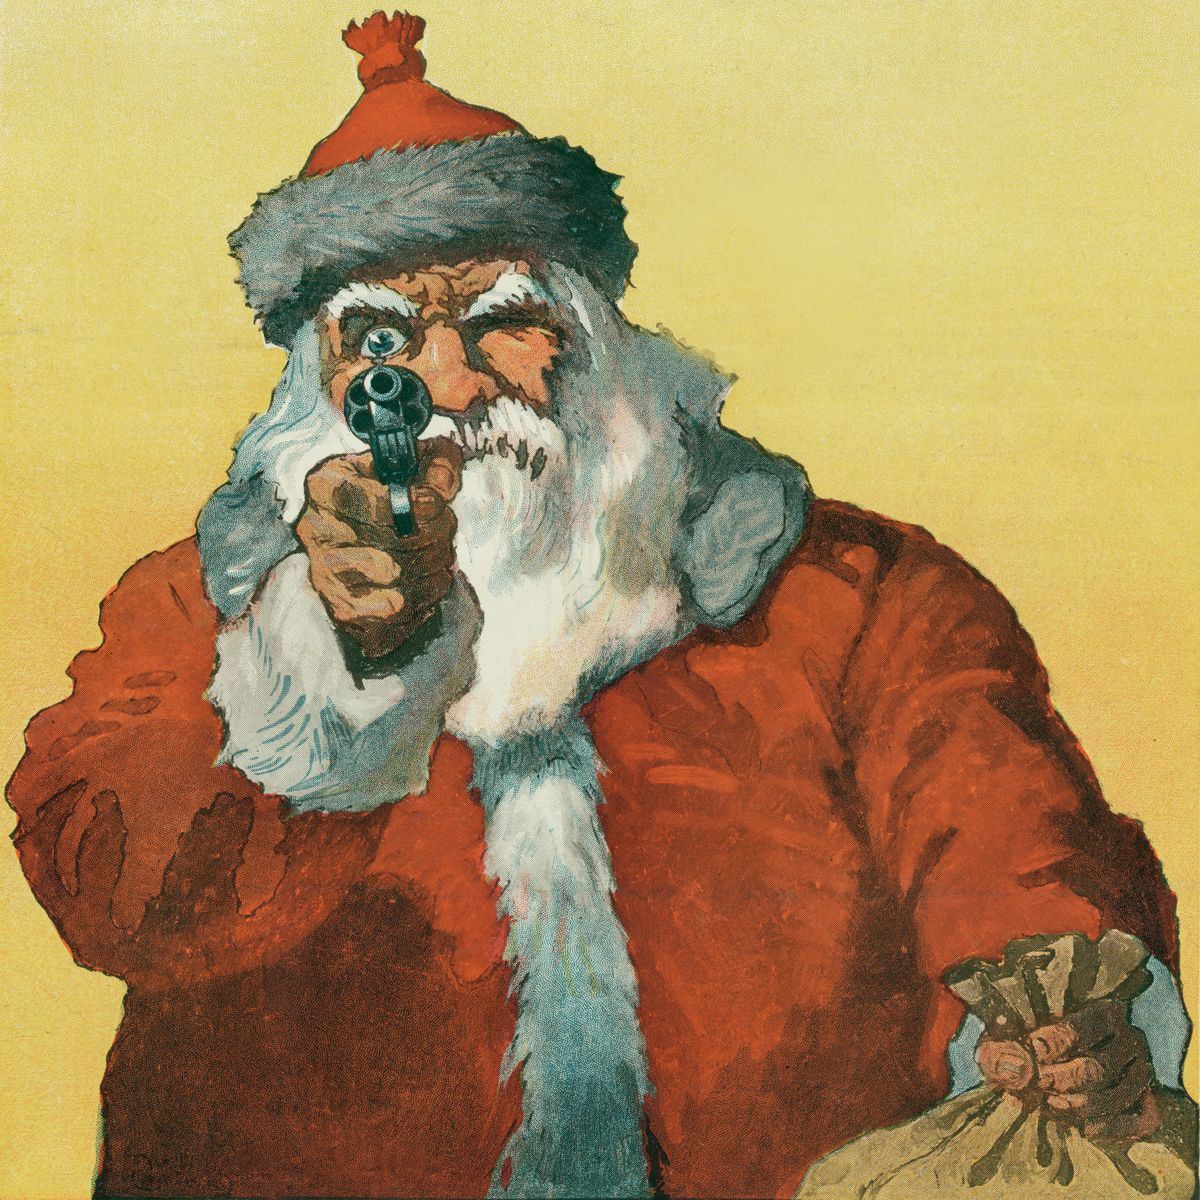 Santa Claus With a Handgun by Will Crawford - 1912